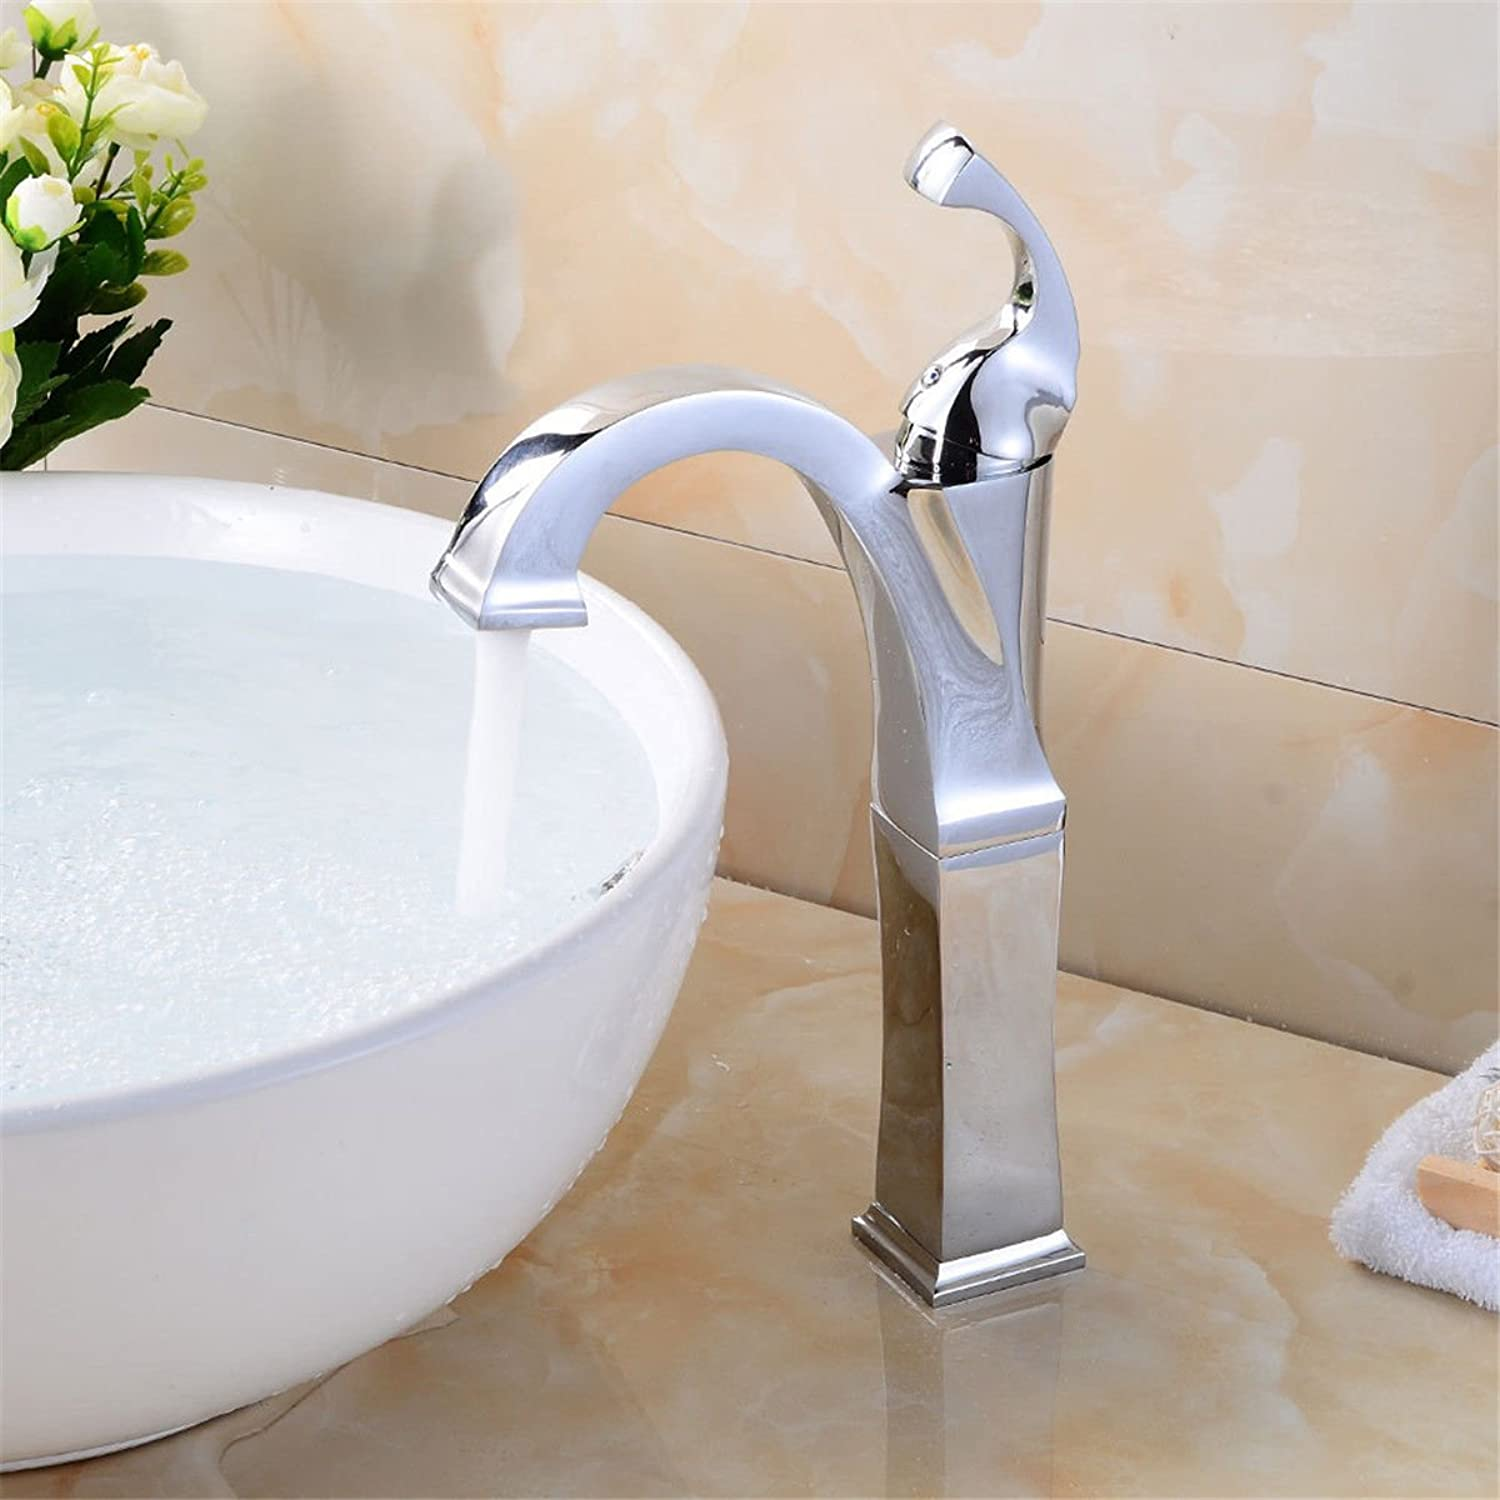 AQMMi Basin Sink Tap Bathroom Bar Faucet Chrome Plated Hot and Cold Water Bathroom Basin Sink Faucet